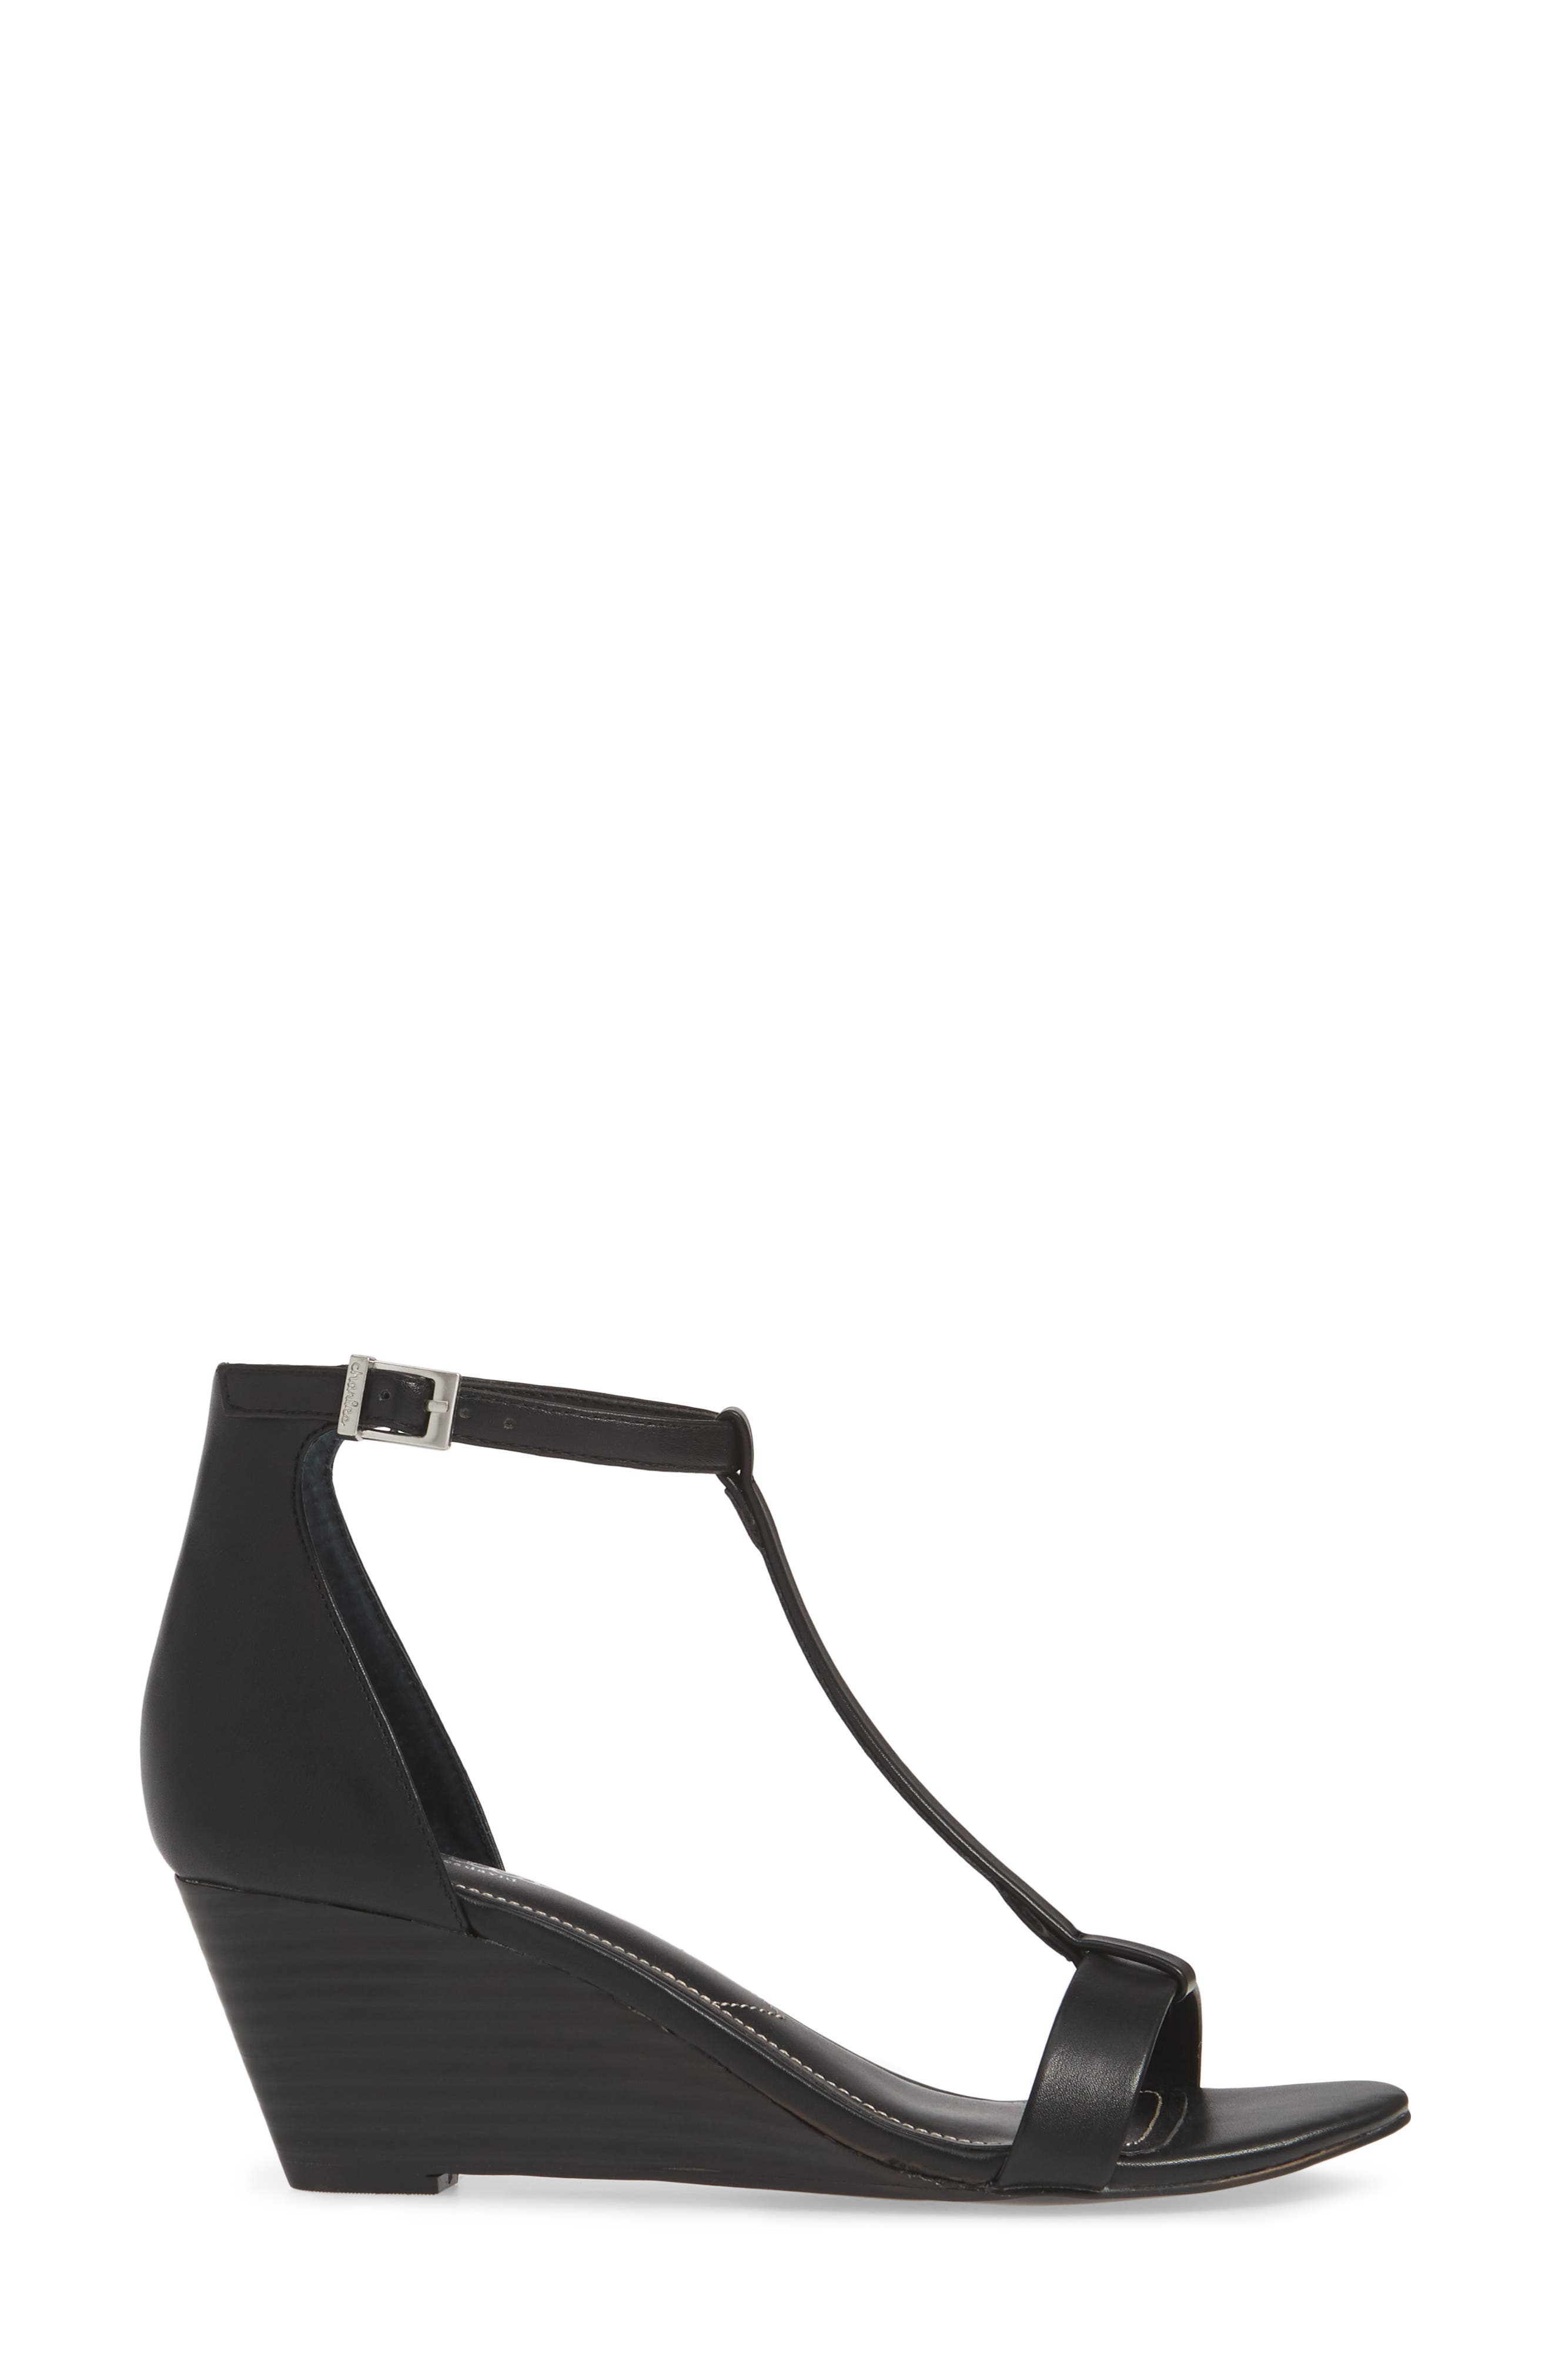 CHARLES BY CHARLES DAVID, Georgette Wedge Sandal, Alternate thumbnail 3, color, BLACK FAUX LEATHER